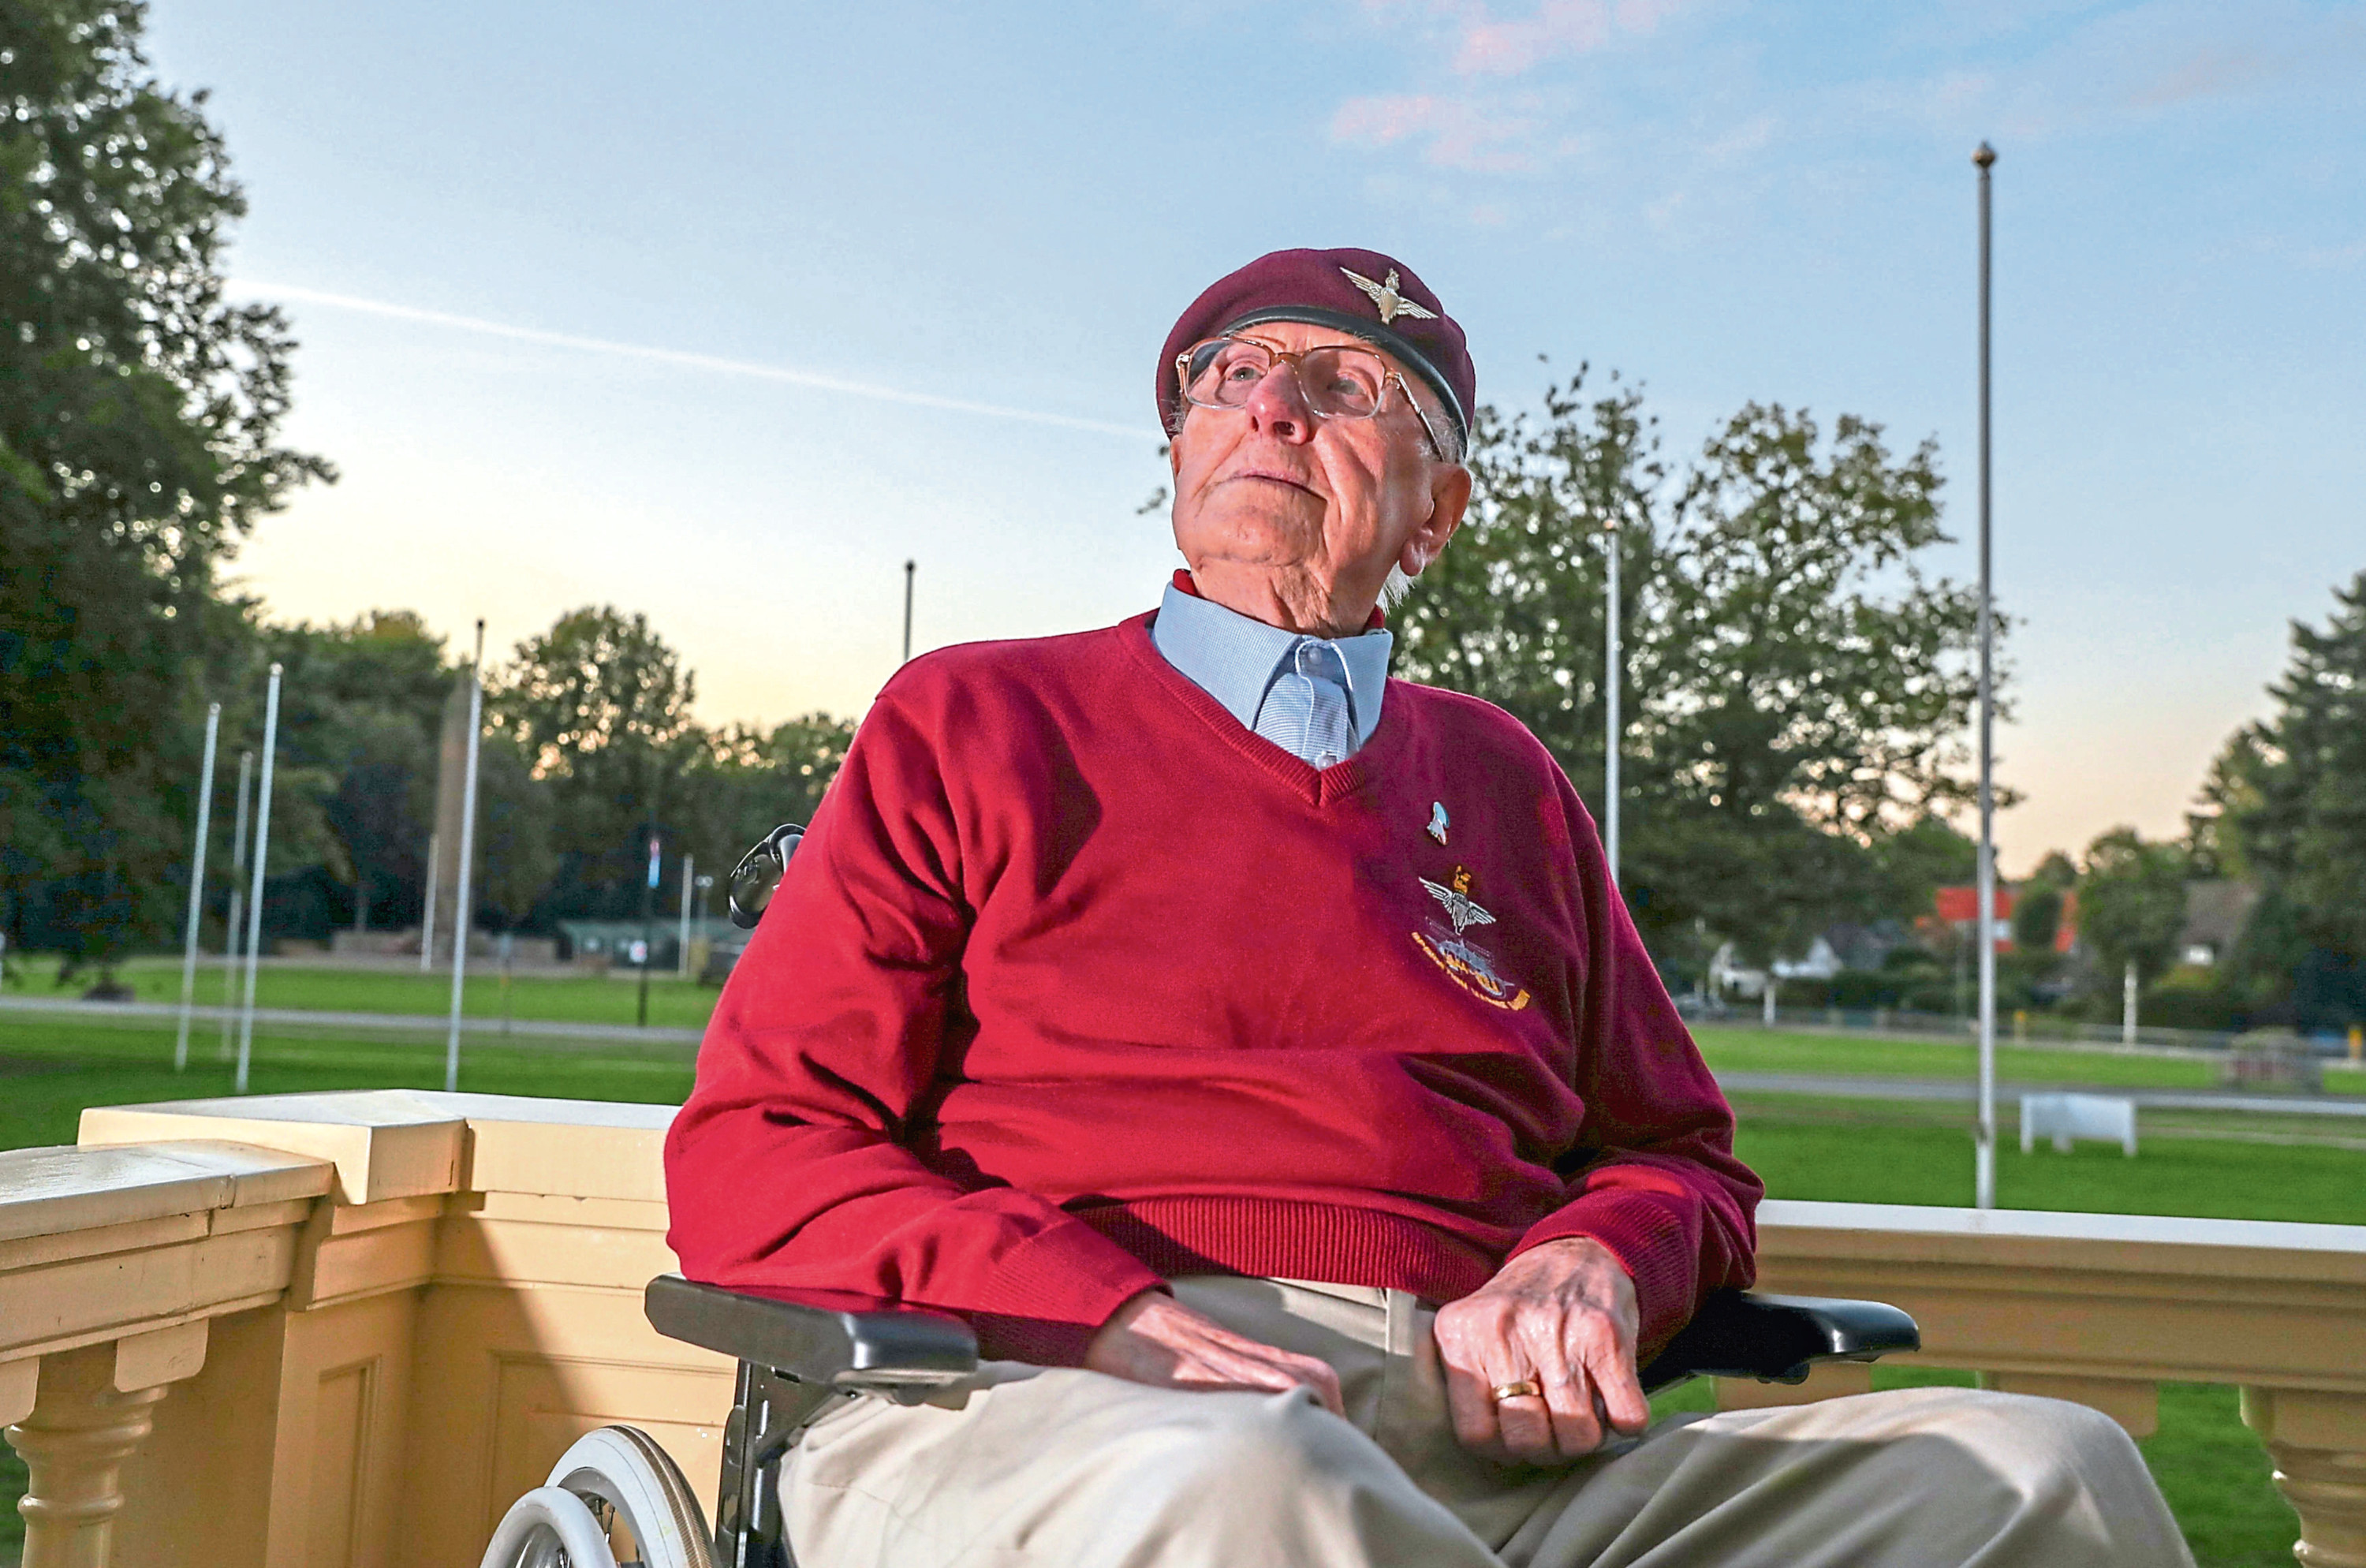 Former paratrooper Sandy Cortmann, from Aberdeen, makes an emotional return to Arnhem in the Netherlands to mark the 75th anniversary of Operation Market Garden